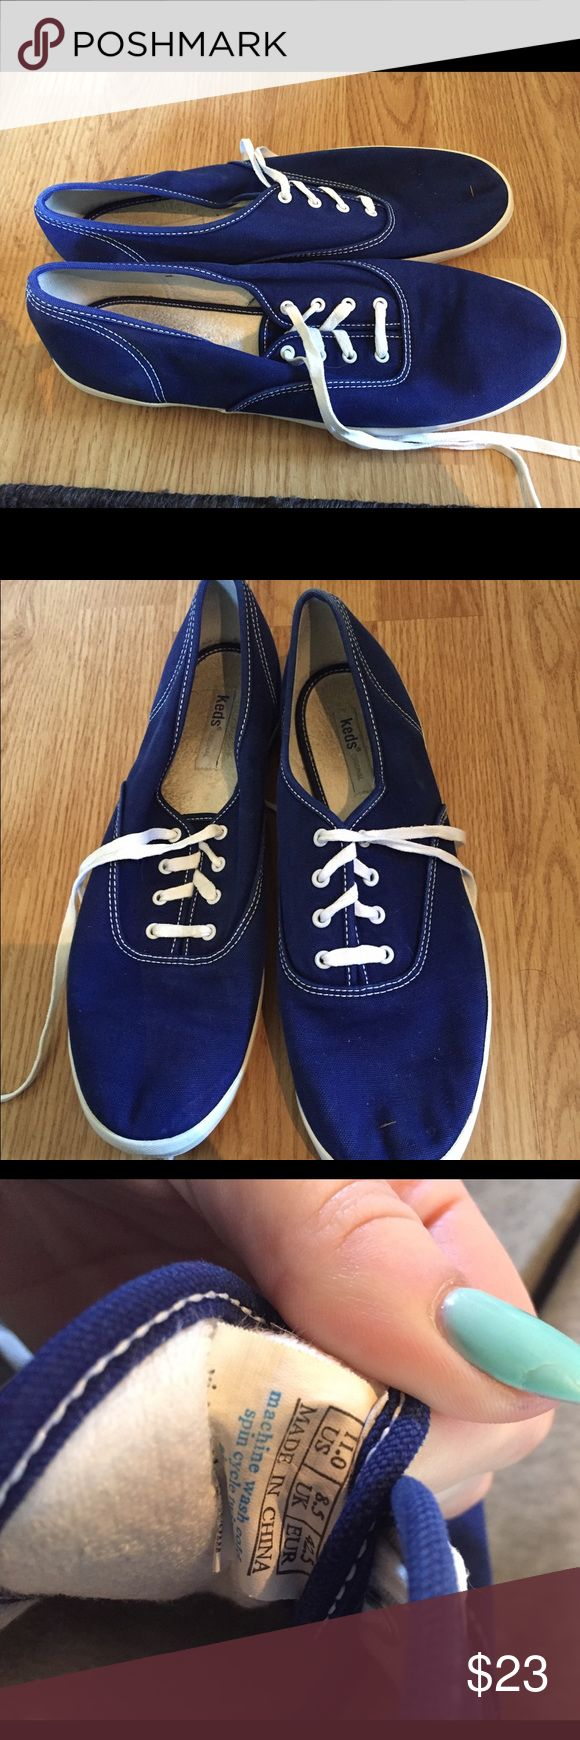 KEDS Champion (dark royal blue) - Size 11 Good condition dark royal blue Keds! Keds Shoes Sneakers